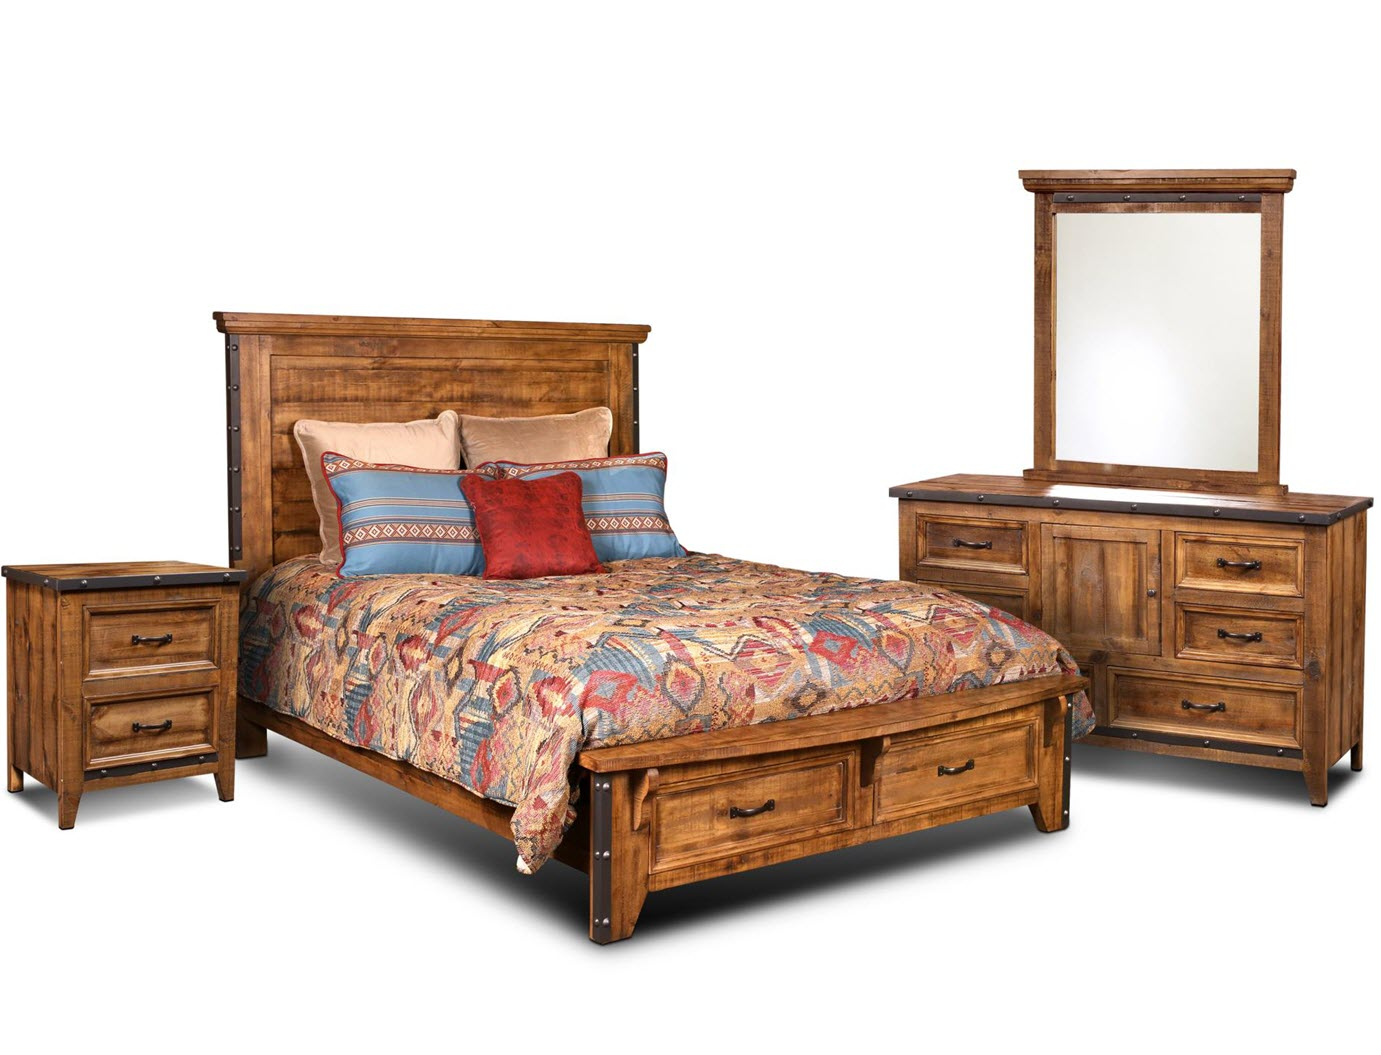 Simple Rustic Hacienda Bed Scene